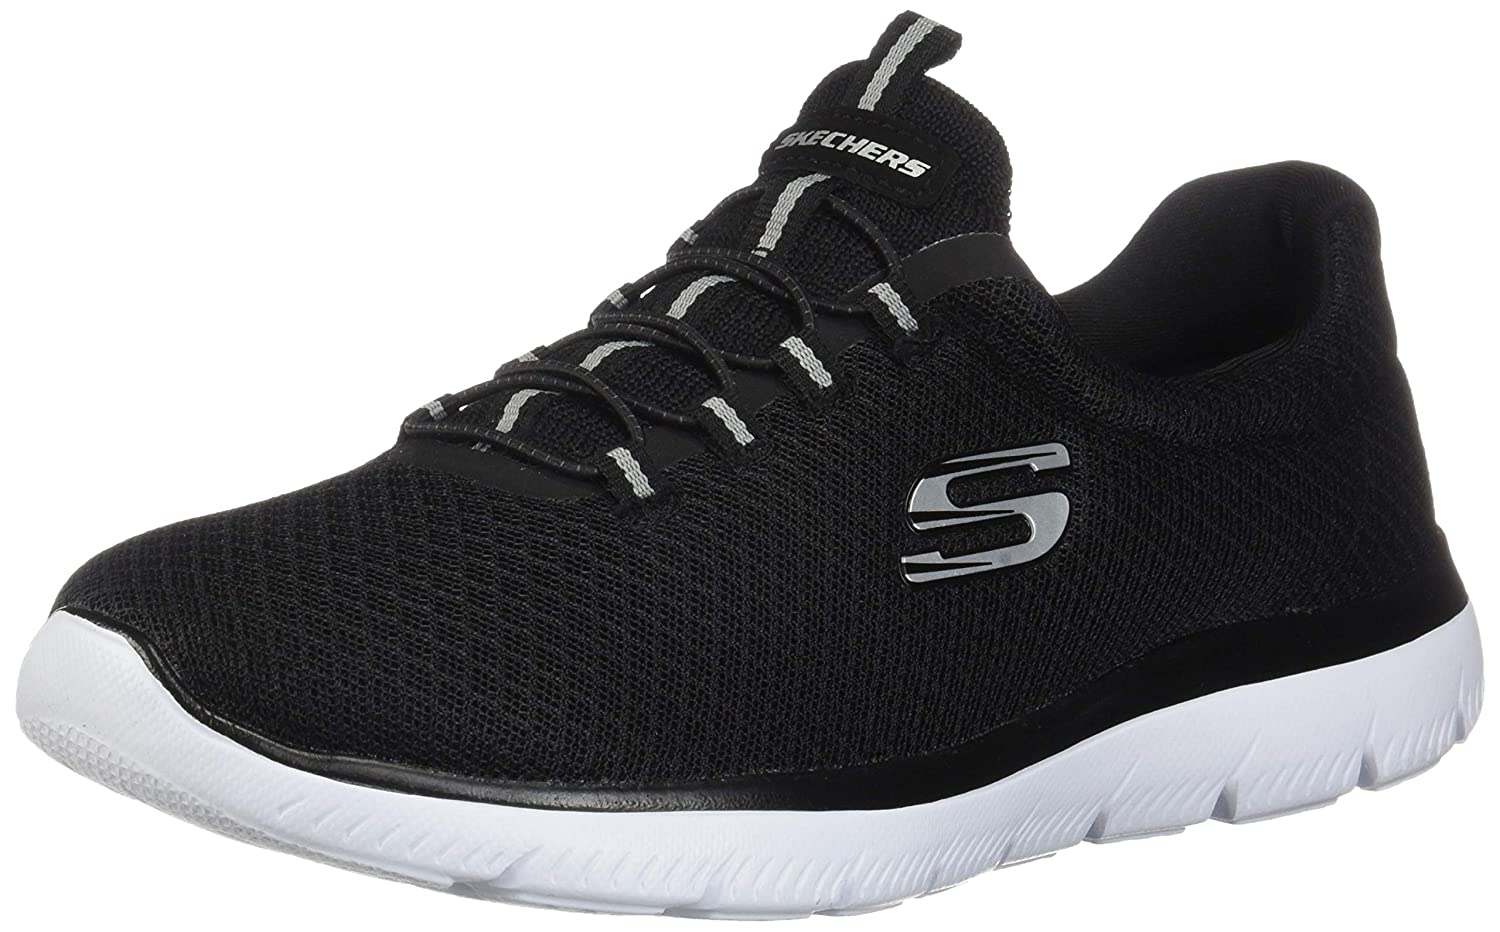 Flight Sport Skechers Direct Sneak Men's MVUqGzSp